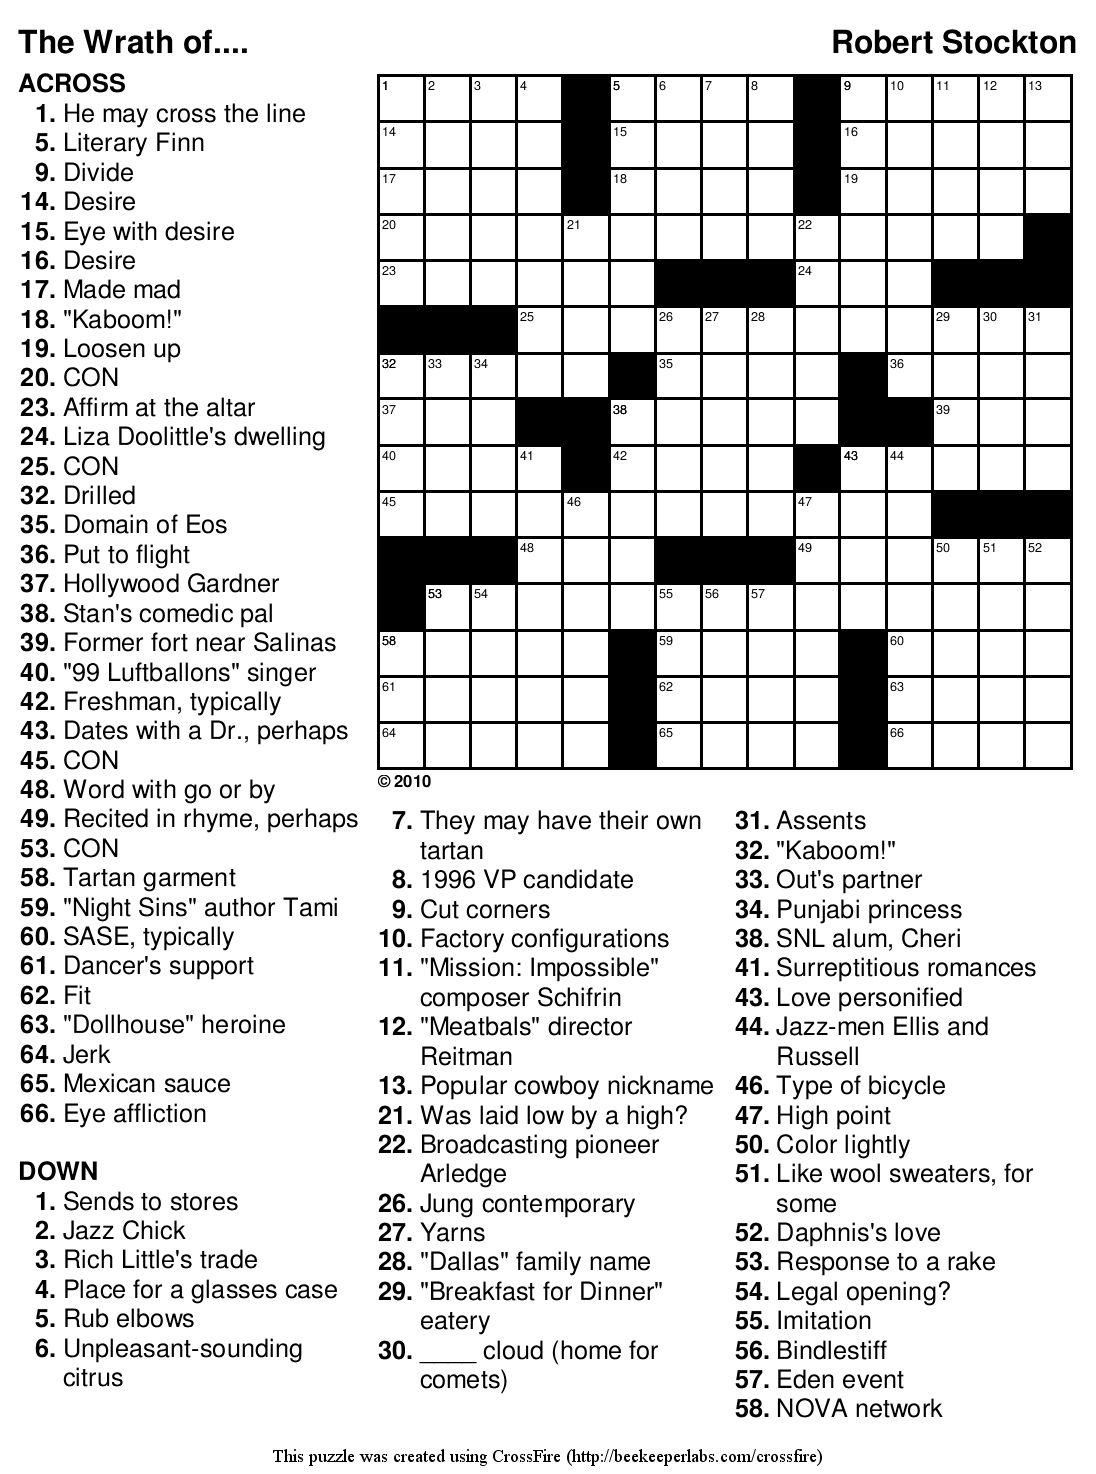 Marvelous Crossword Puzzles Easy Printable Free Org | Chas's Board - Easy Crossword Puzzles Free Online Printable